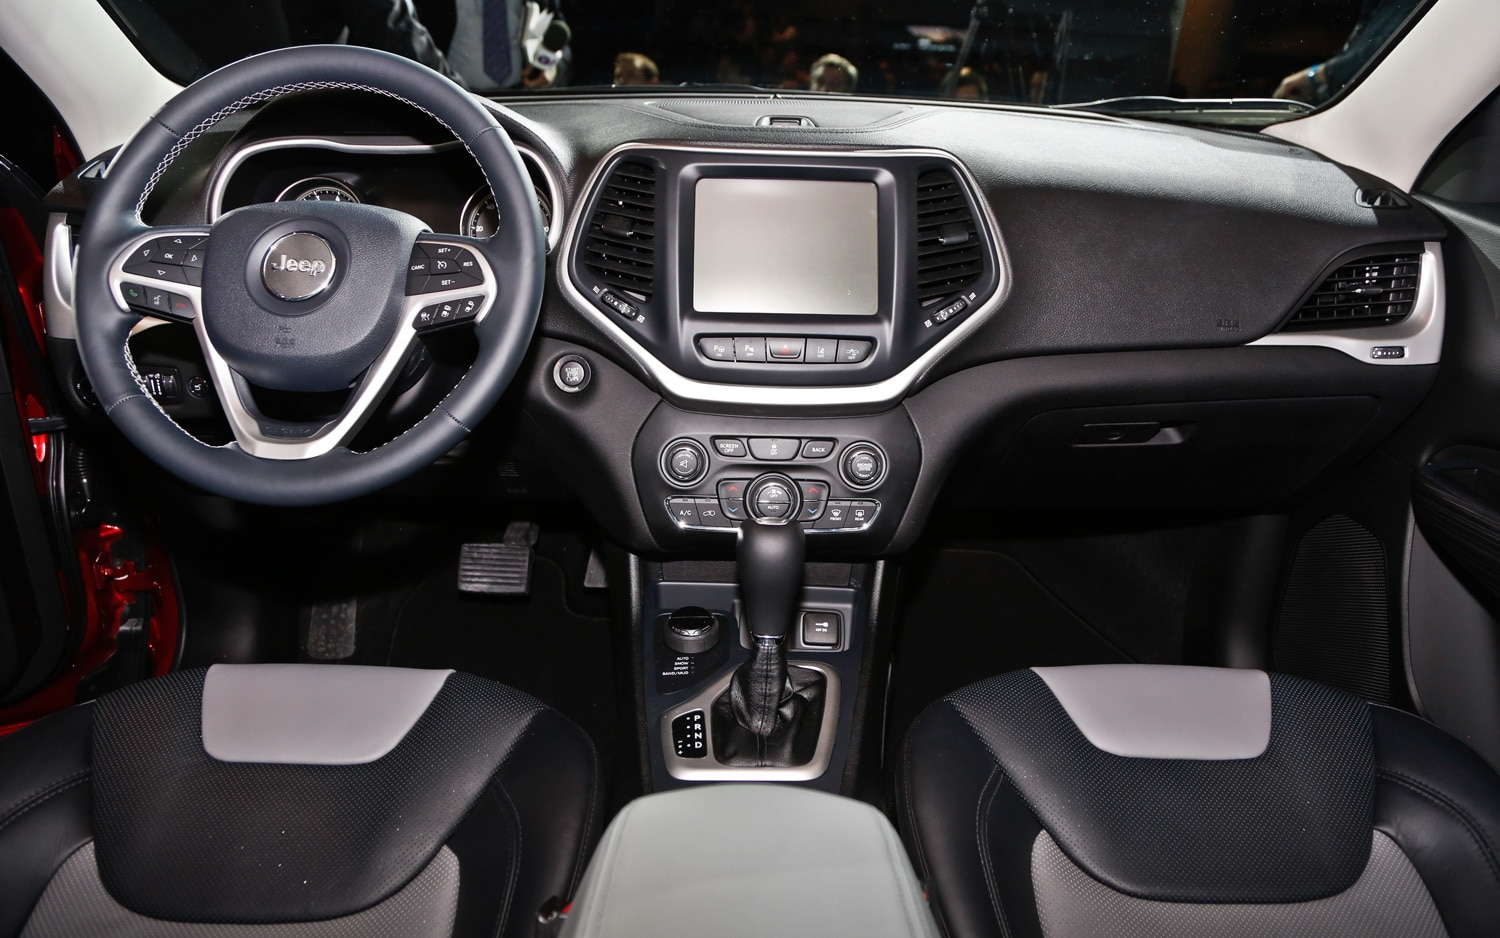 2014 Jeep Cherokee Limited cockpit